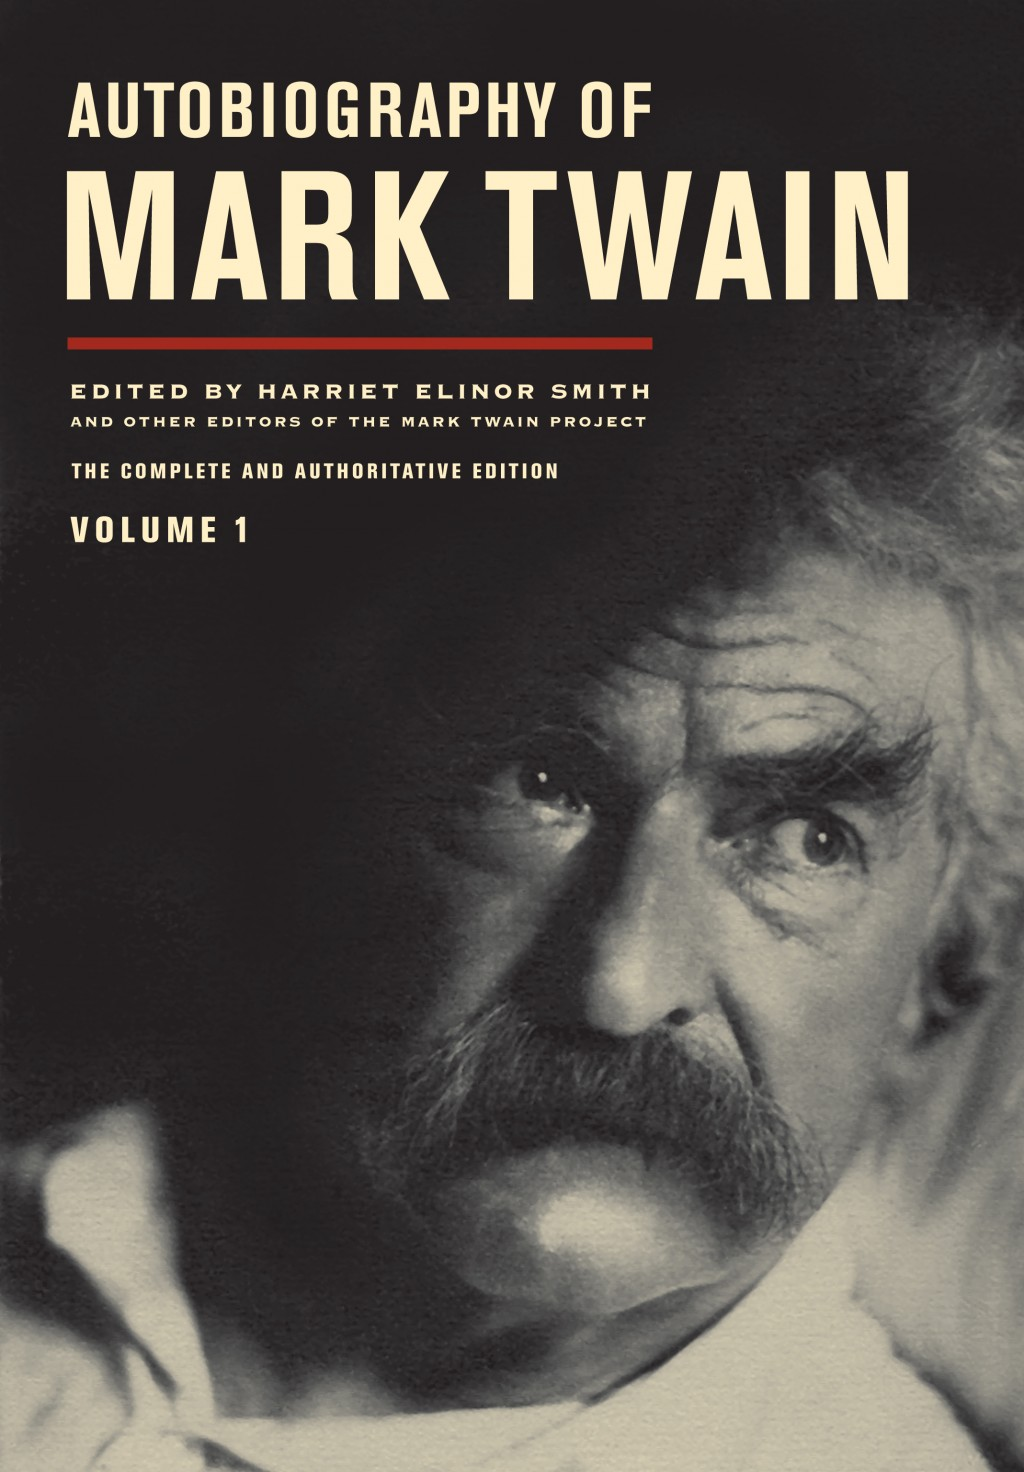 007 Essay Example Mark Twain Essays 9780520267190 Auto V1 Surprising Pdf On Writing Nonfiction Large